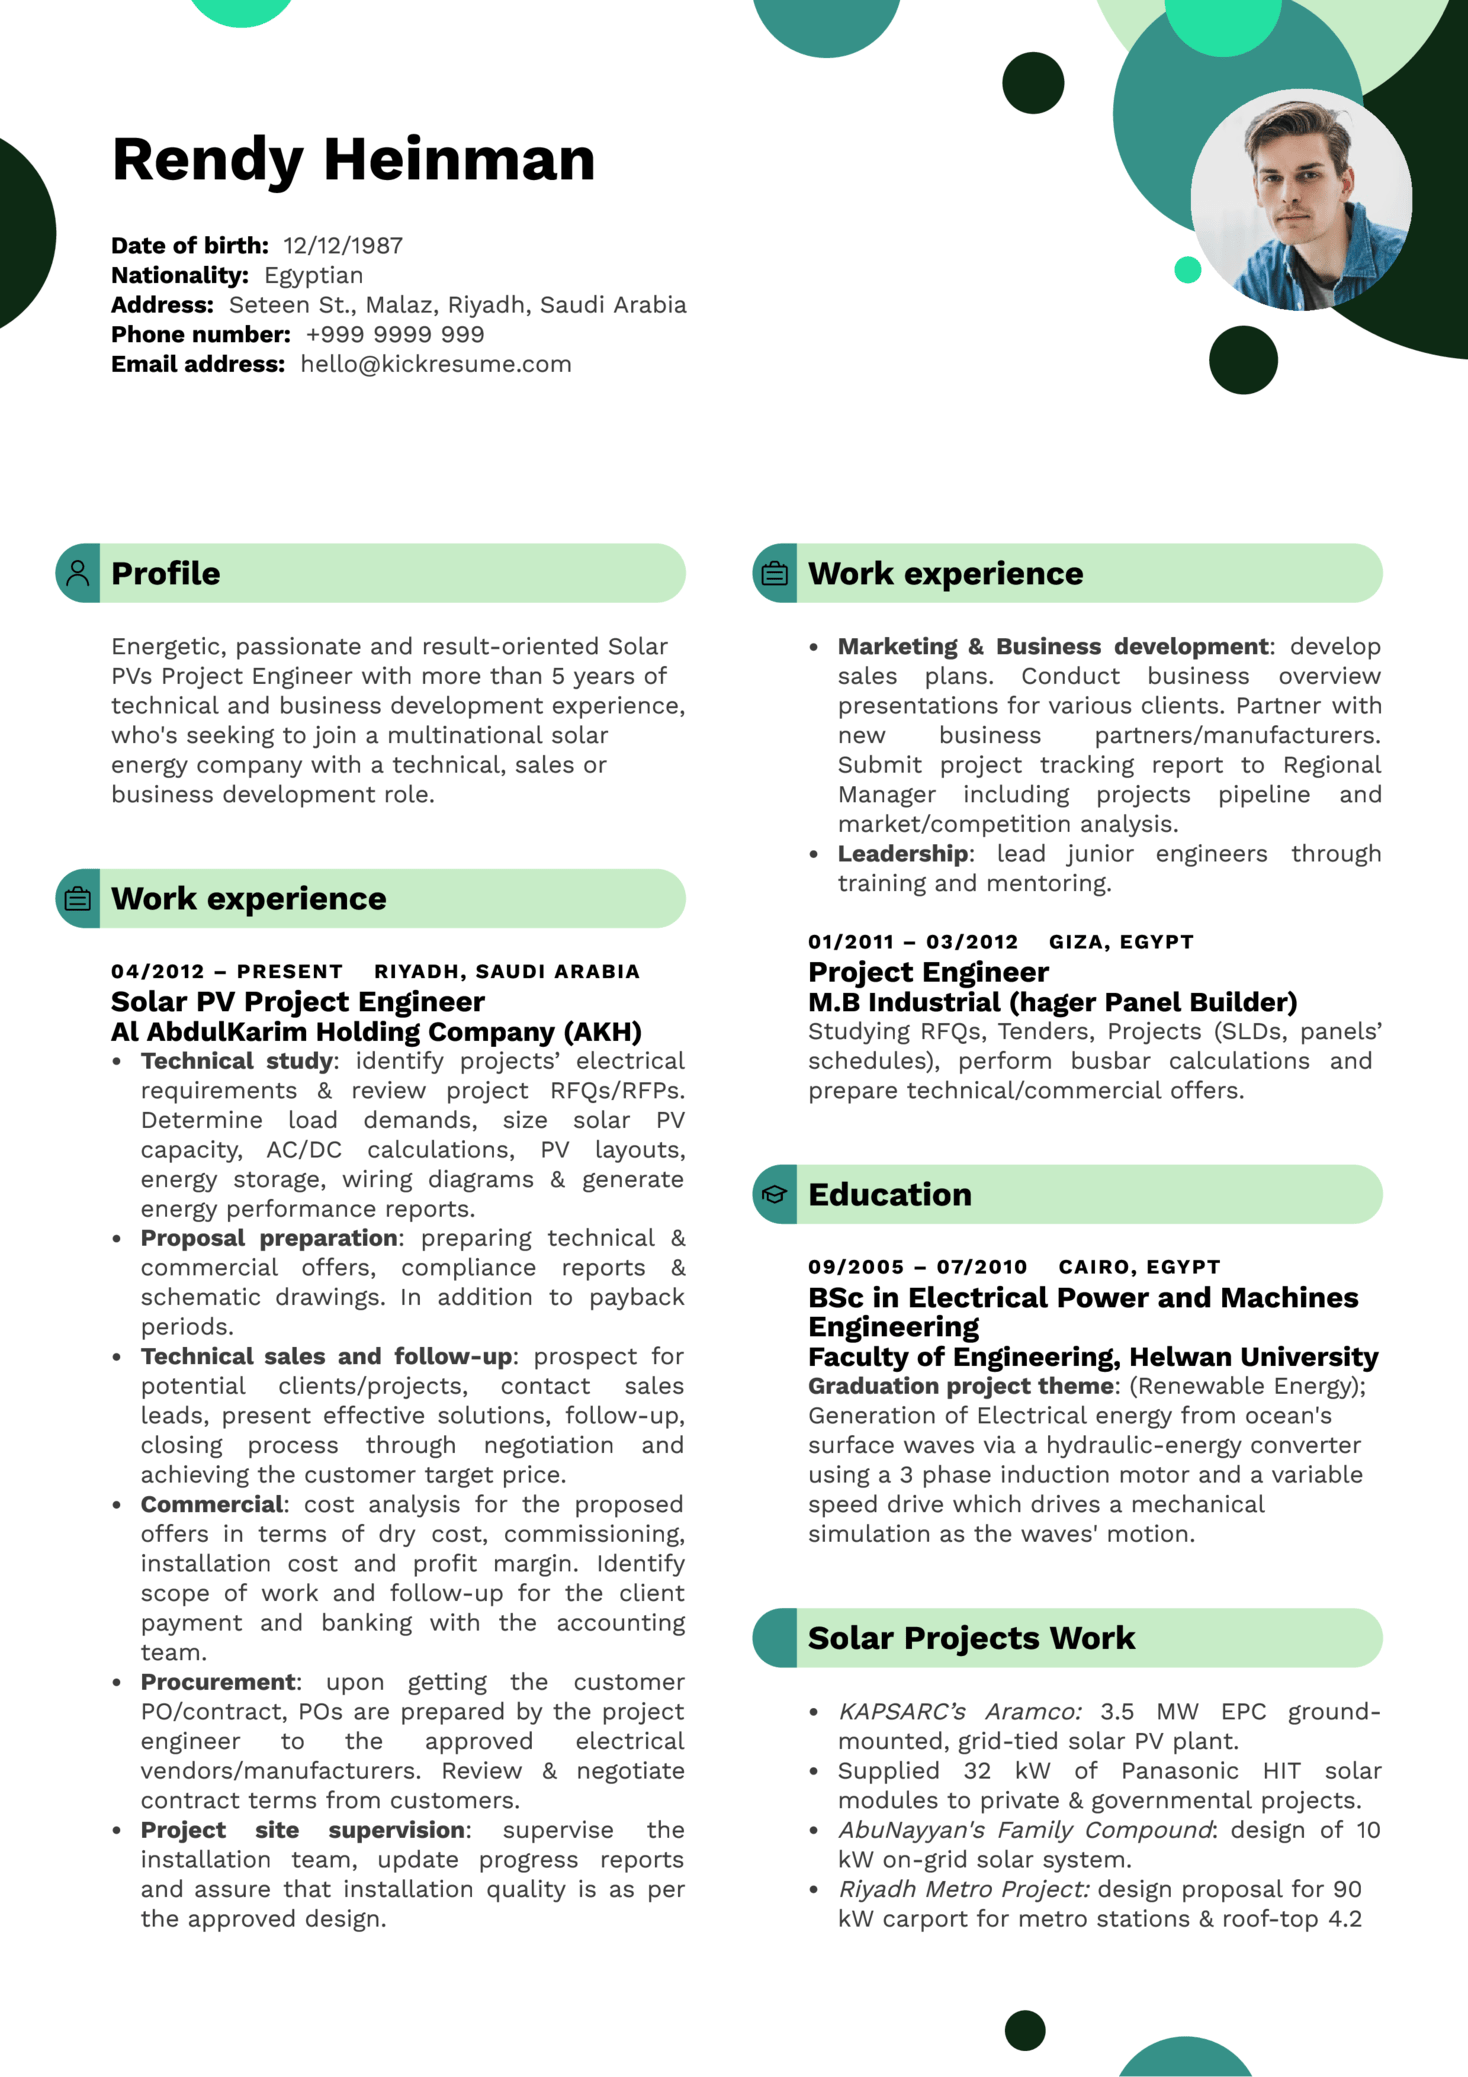 Business Development Engineer Resume Sample (parte 1)